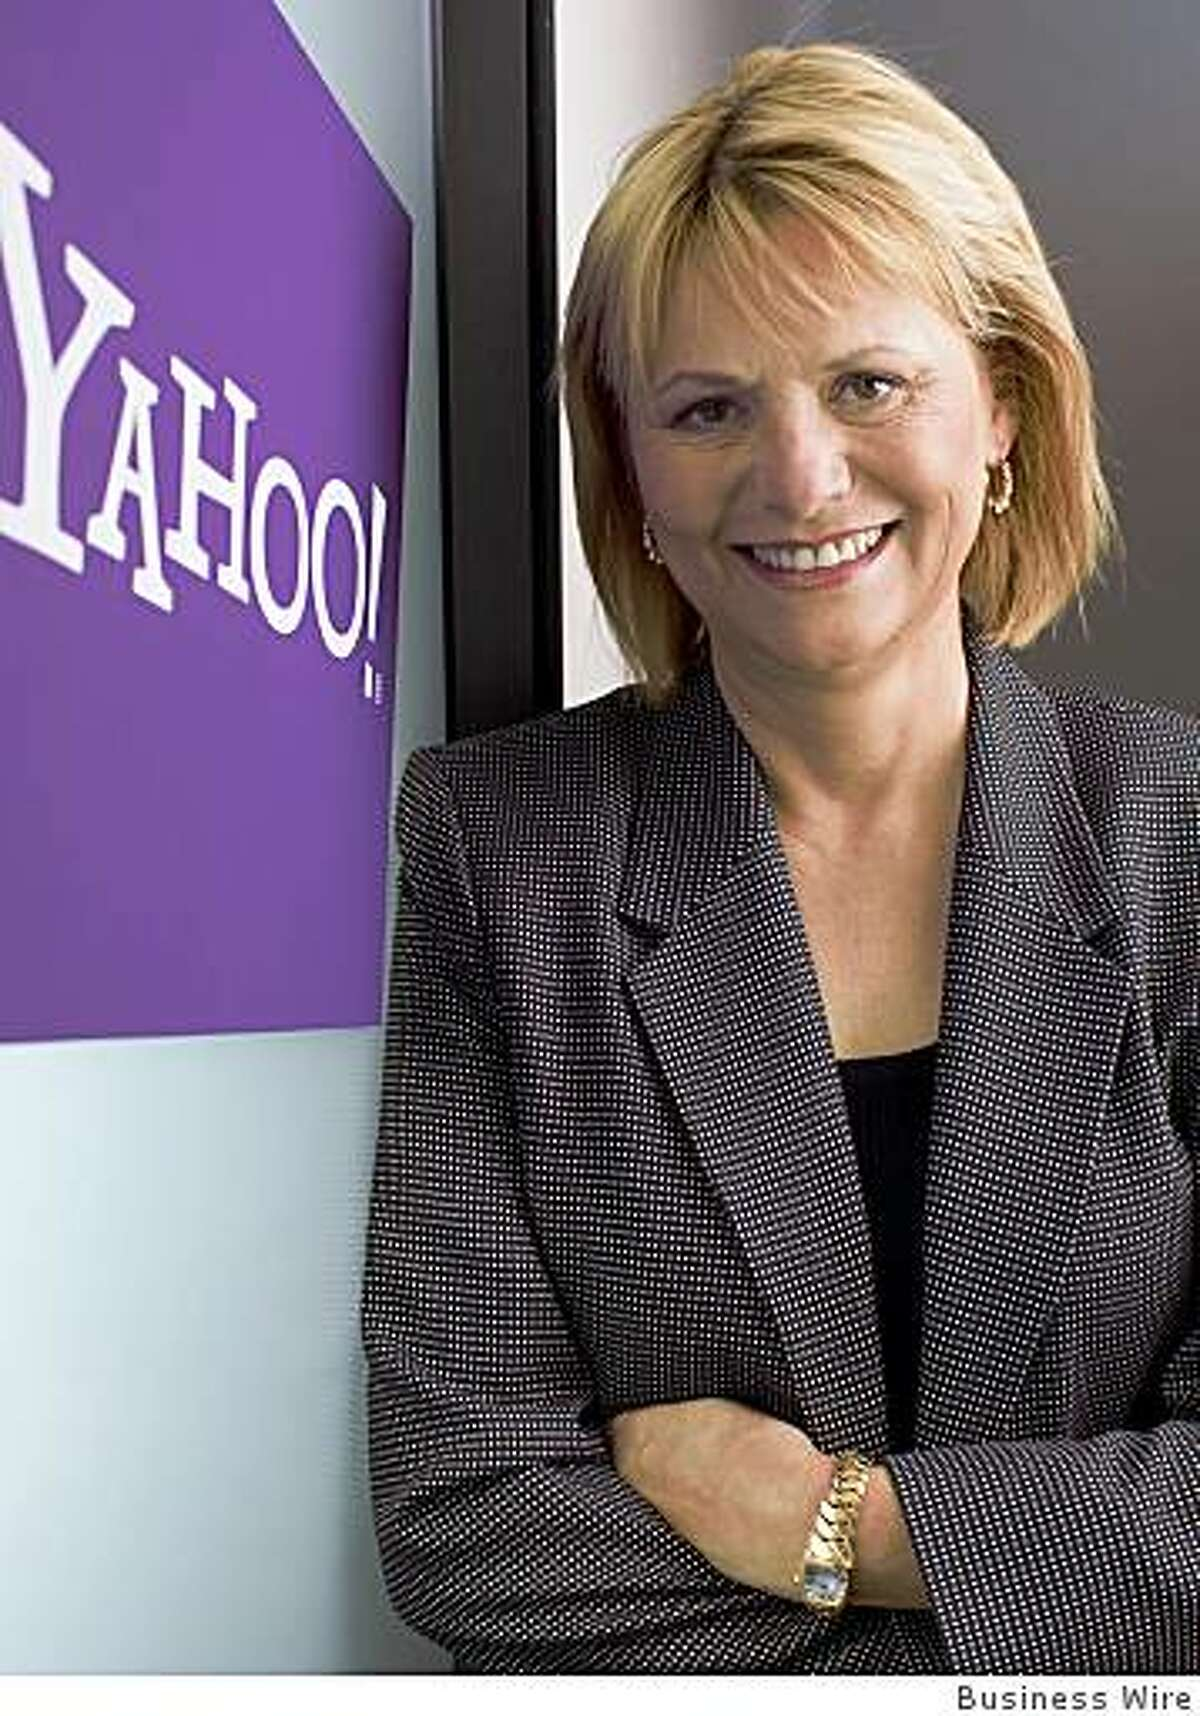 Yahoo! Inc. (NASDAQ:YHOO), a leading global brand and one of the world's most trafficked Internet destinations, announced today that Carol Bartz, a veteran technology executive who was most recently Executive Chairman of Autodesk (NASDAQ: ADSK), has been named Chief Executive Officer and a member of the Board of Directors, effective immediately.